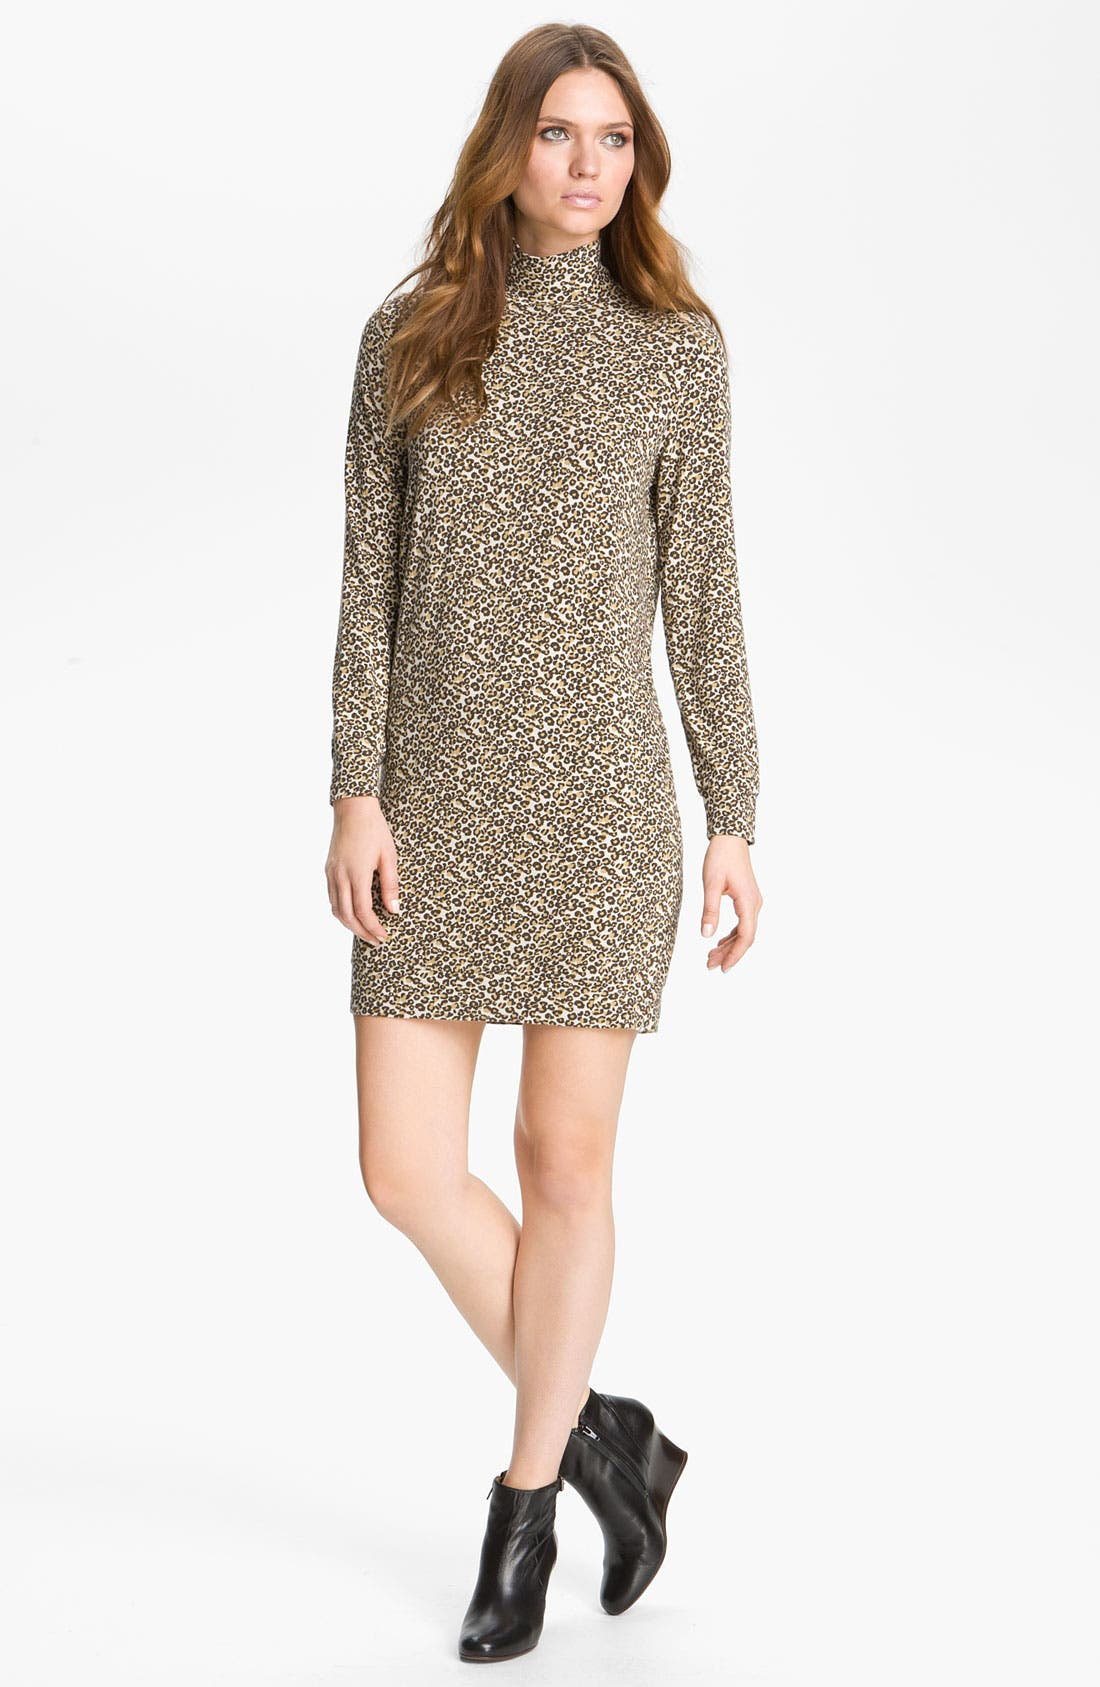 Alternate Image 1 Selected - A.P.C. Leopard Print Turtleneck Dress